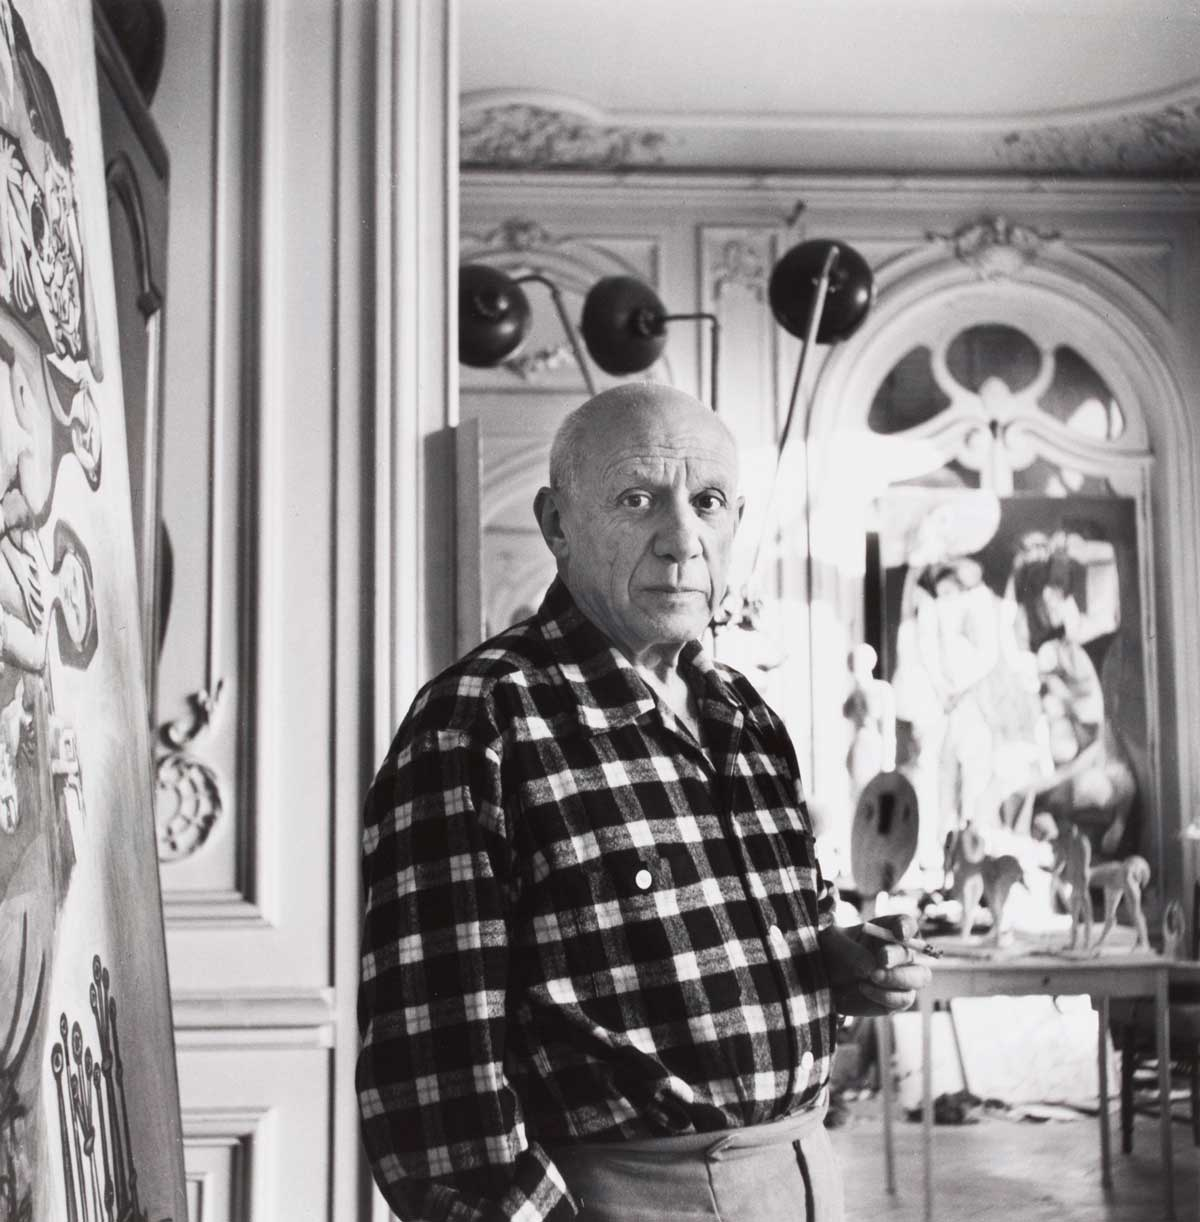 Black and white photo of a man in a checkered shirt standing in an entryway